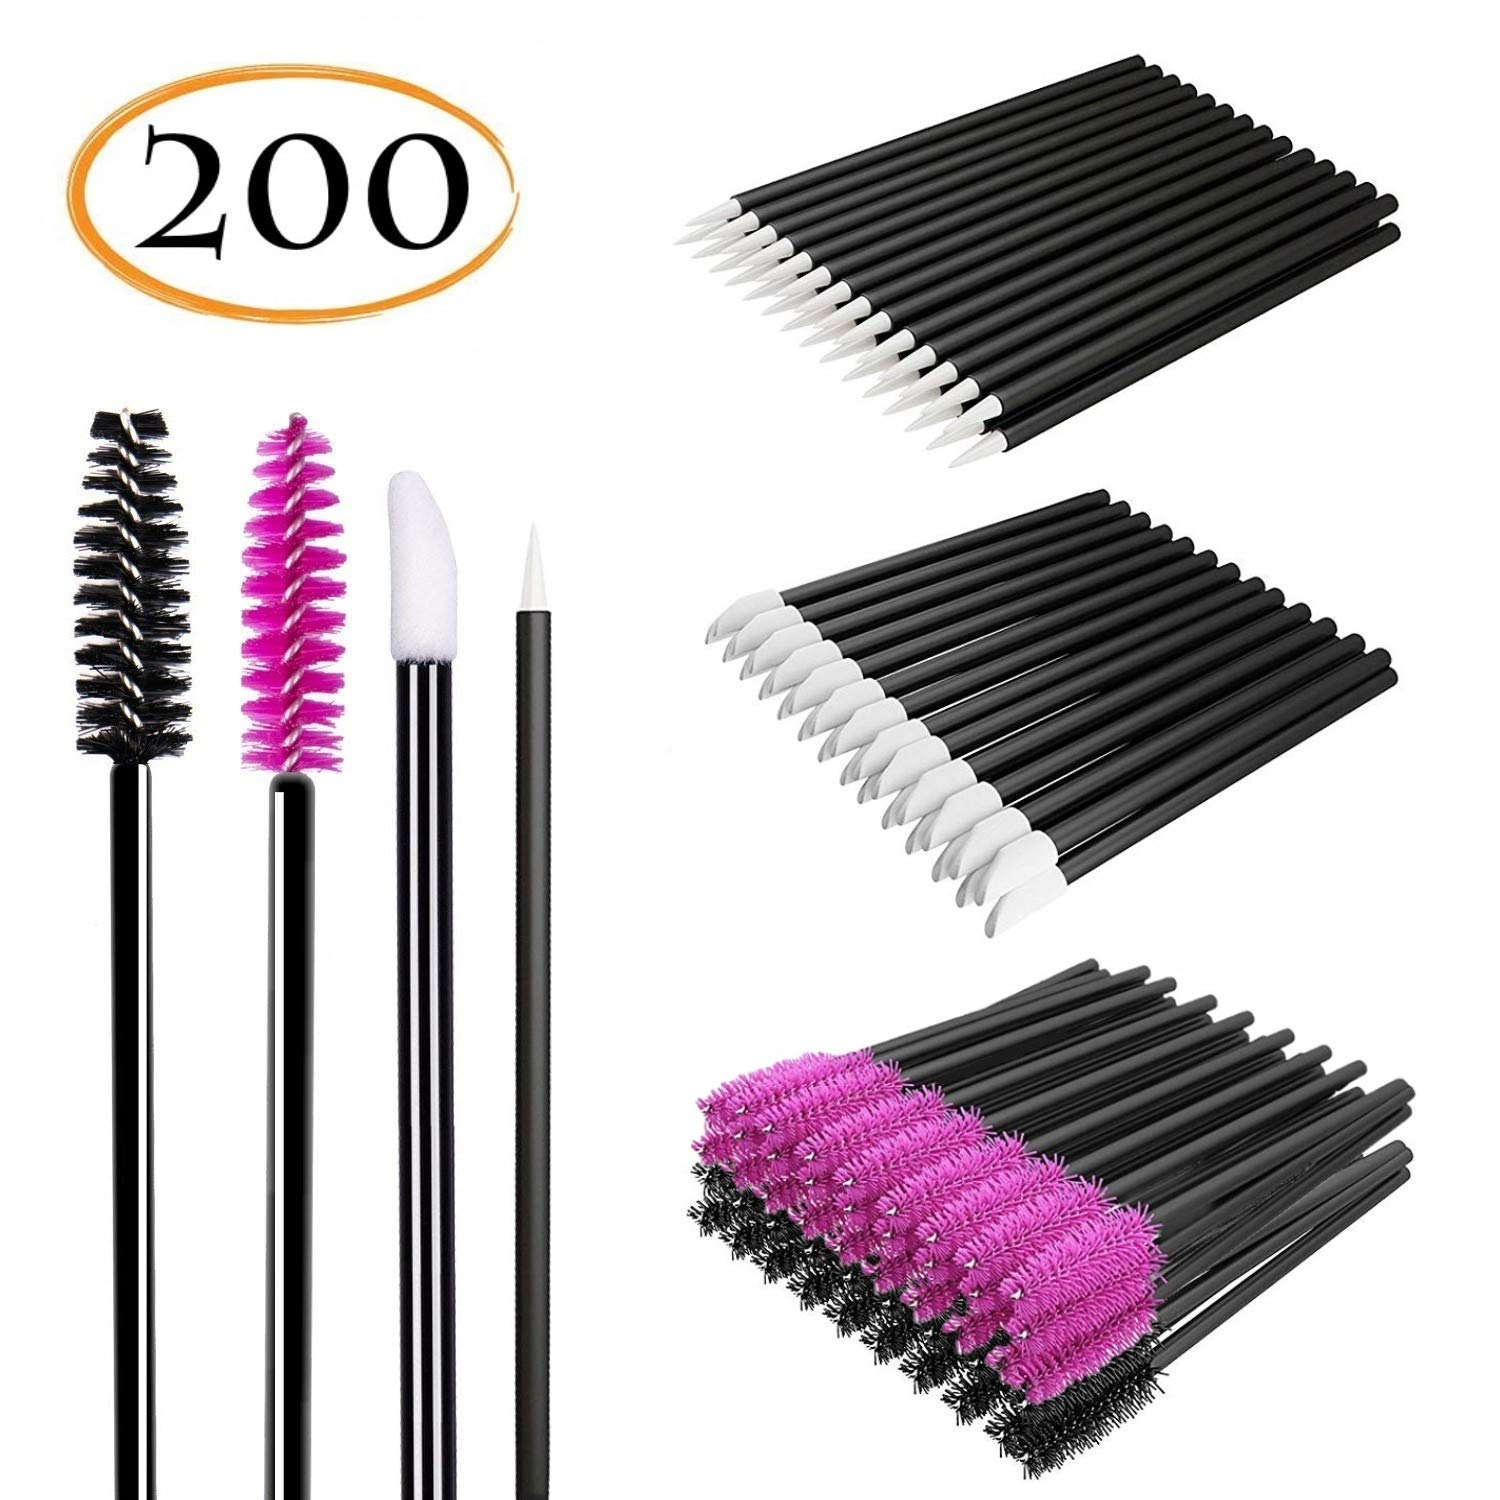 Disposable Makeup Applicator 200 Pcs 4 Style - Lash Brushes Mascara Wands & Lip Brushes & Eyeliner Brush - Disposable Makeup Tools Daily Makeup Brushes Sets Kits Onwon